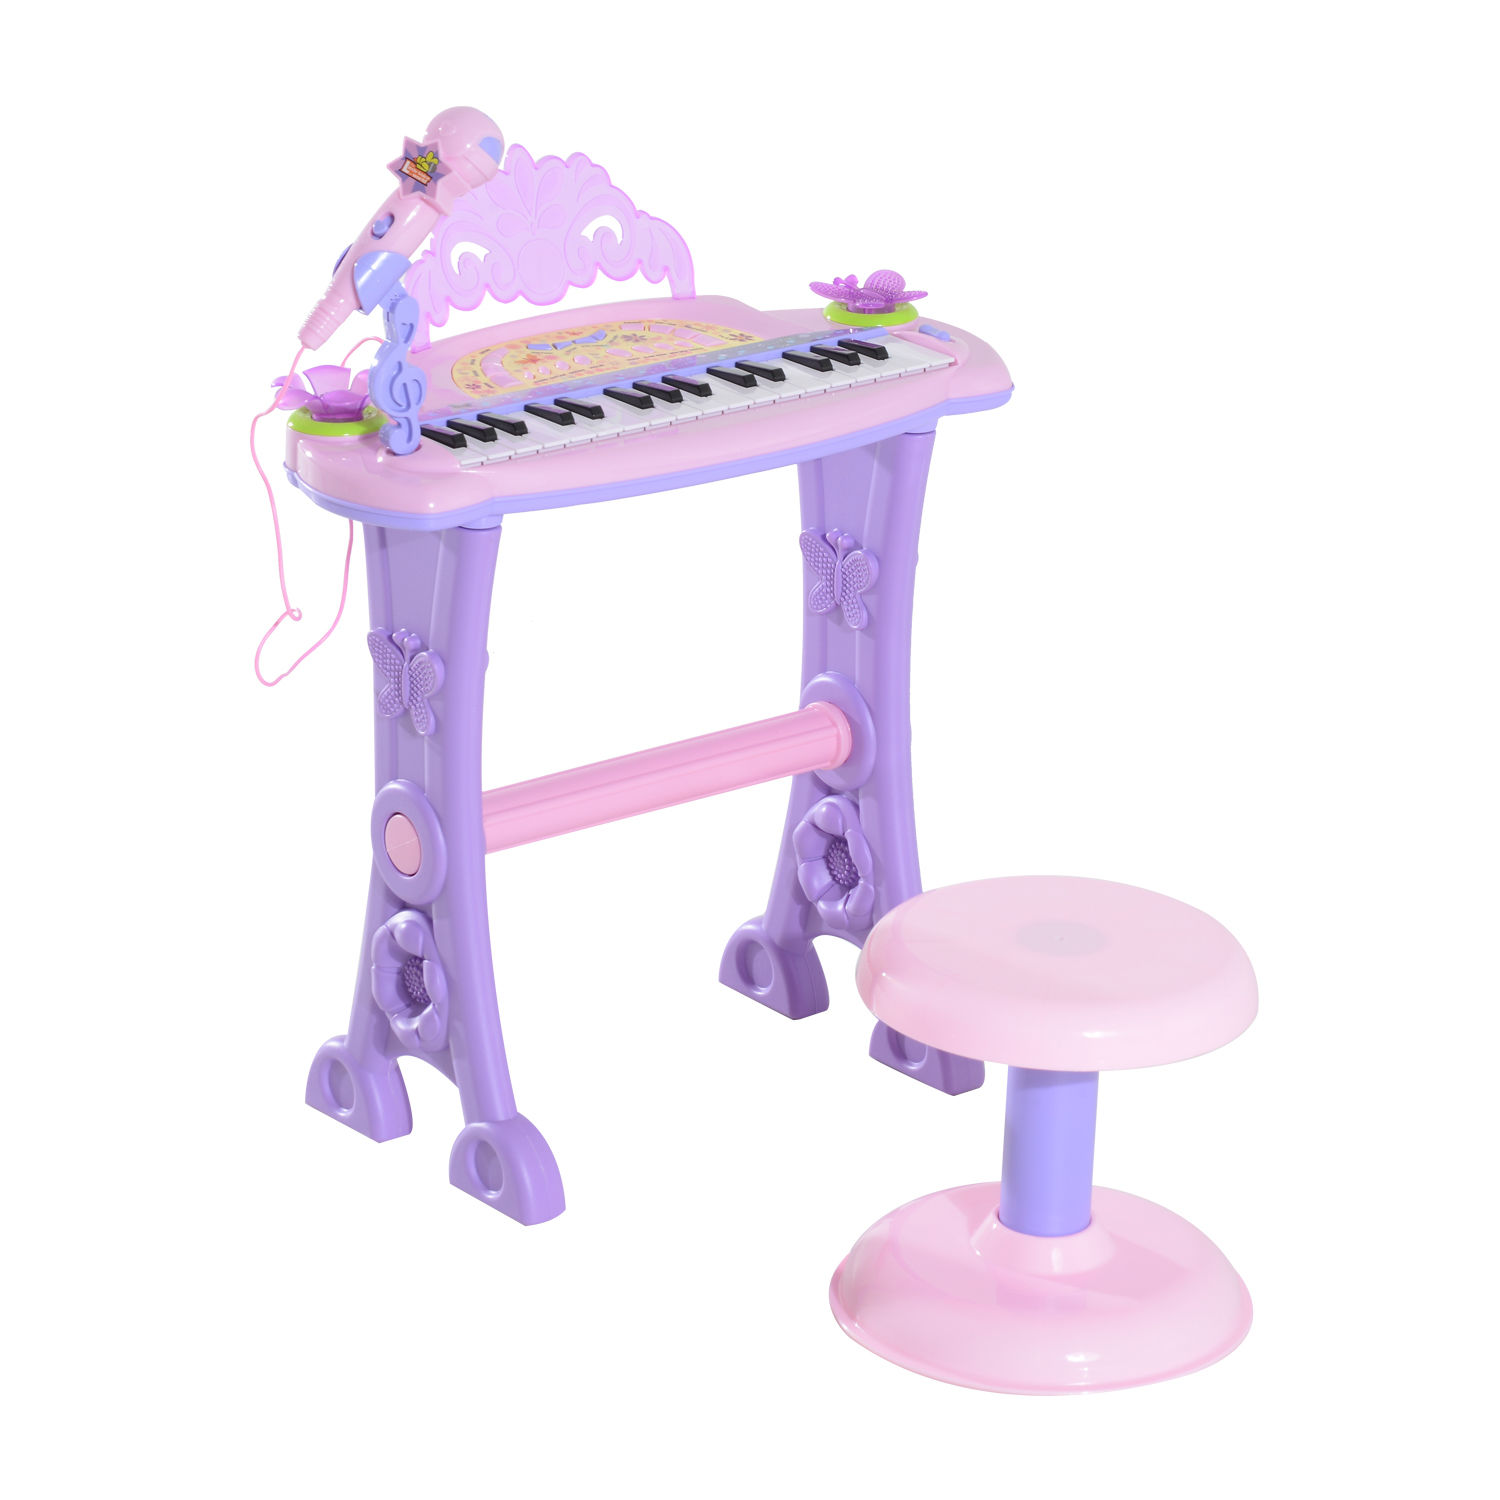 37-32-Key-Kids-Electronic-Keyboard-Mini-Grand-Piano-Stool-Microphone-Musical-Toy thumbnail 41